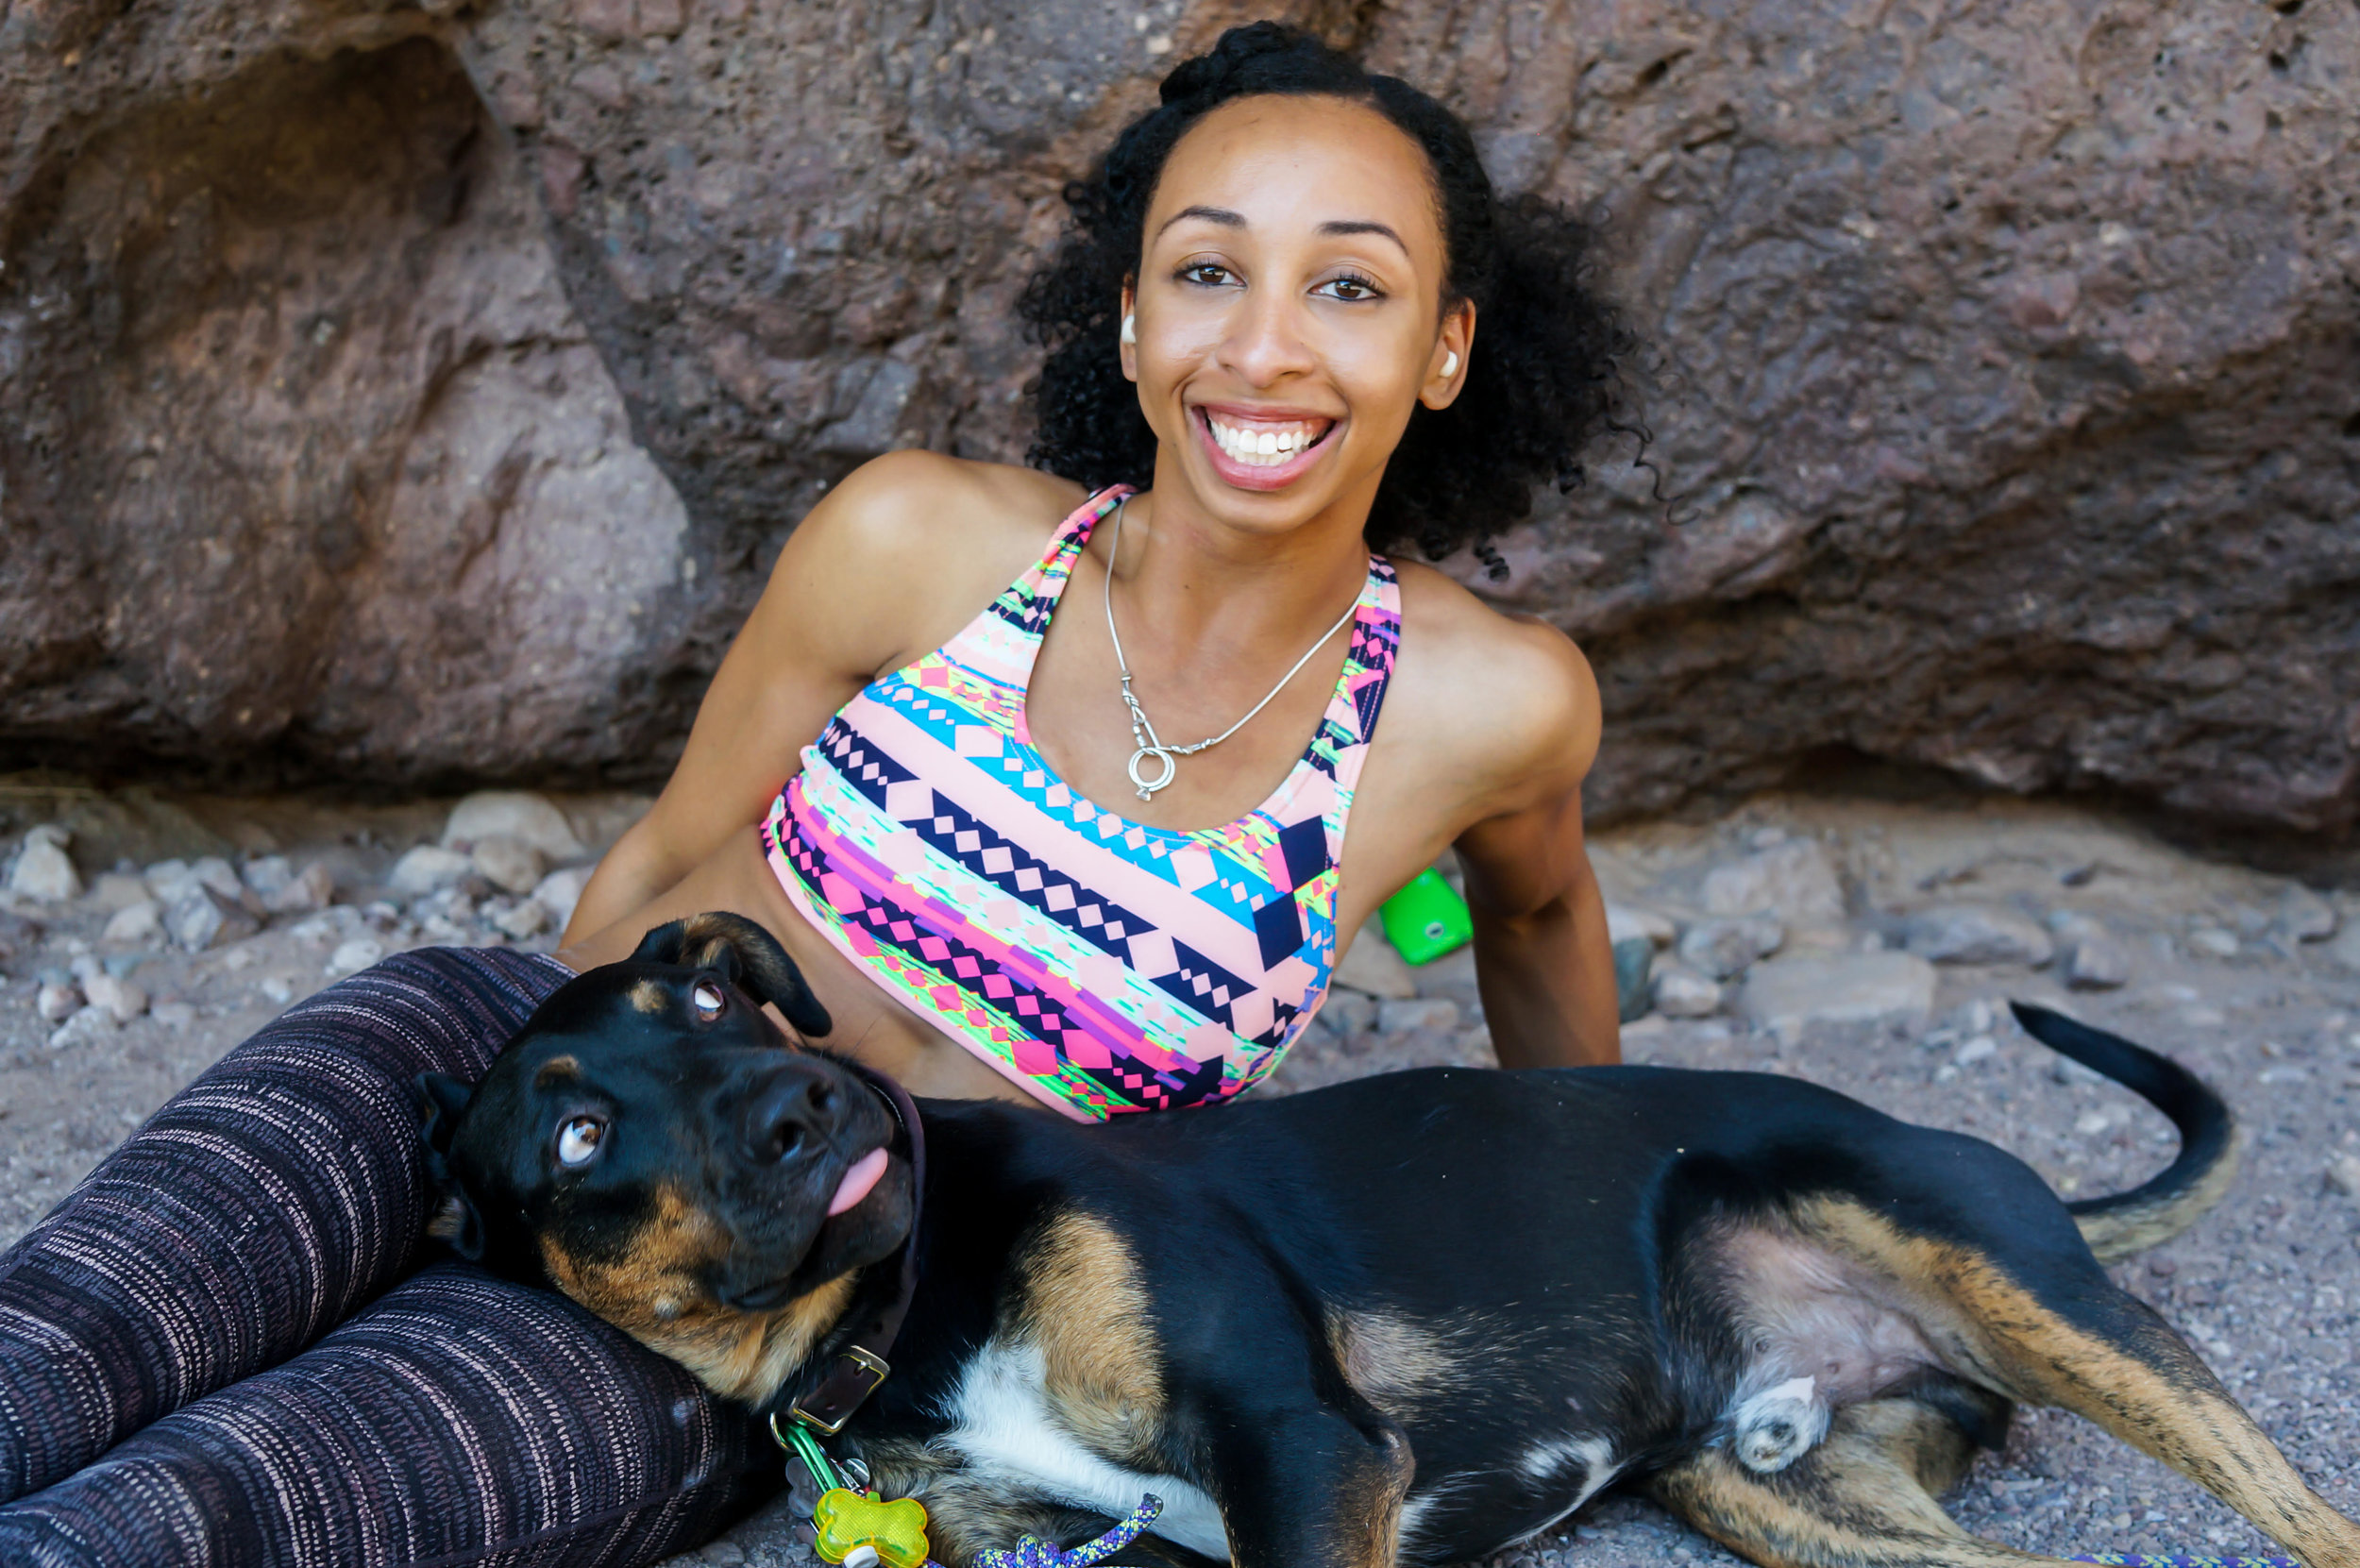 FAVIA DUBYK    Favia is a photographer, climber and member of Brown Girls Climb. She enjoys practicing medicine and maintains an active lifestyle with her husband, rescue pup and five cats.    Read more  →